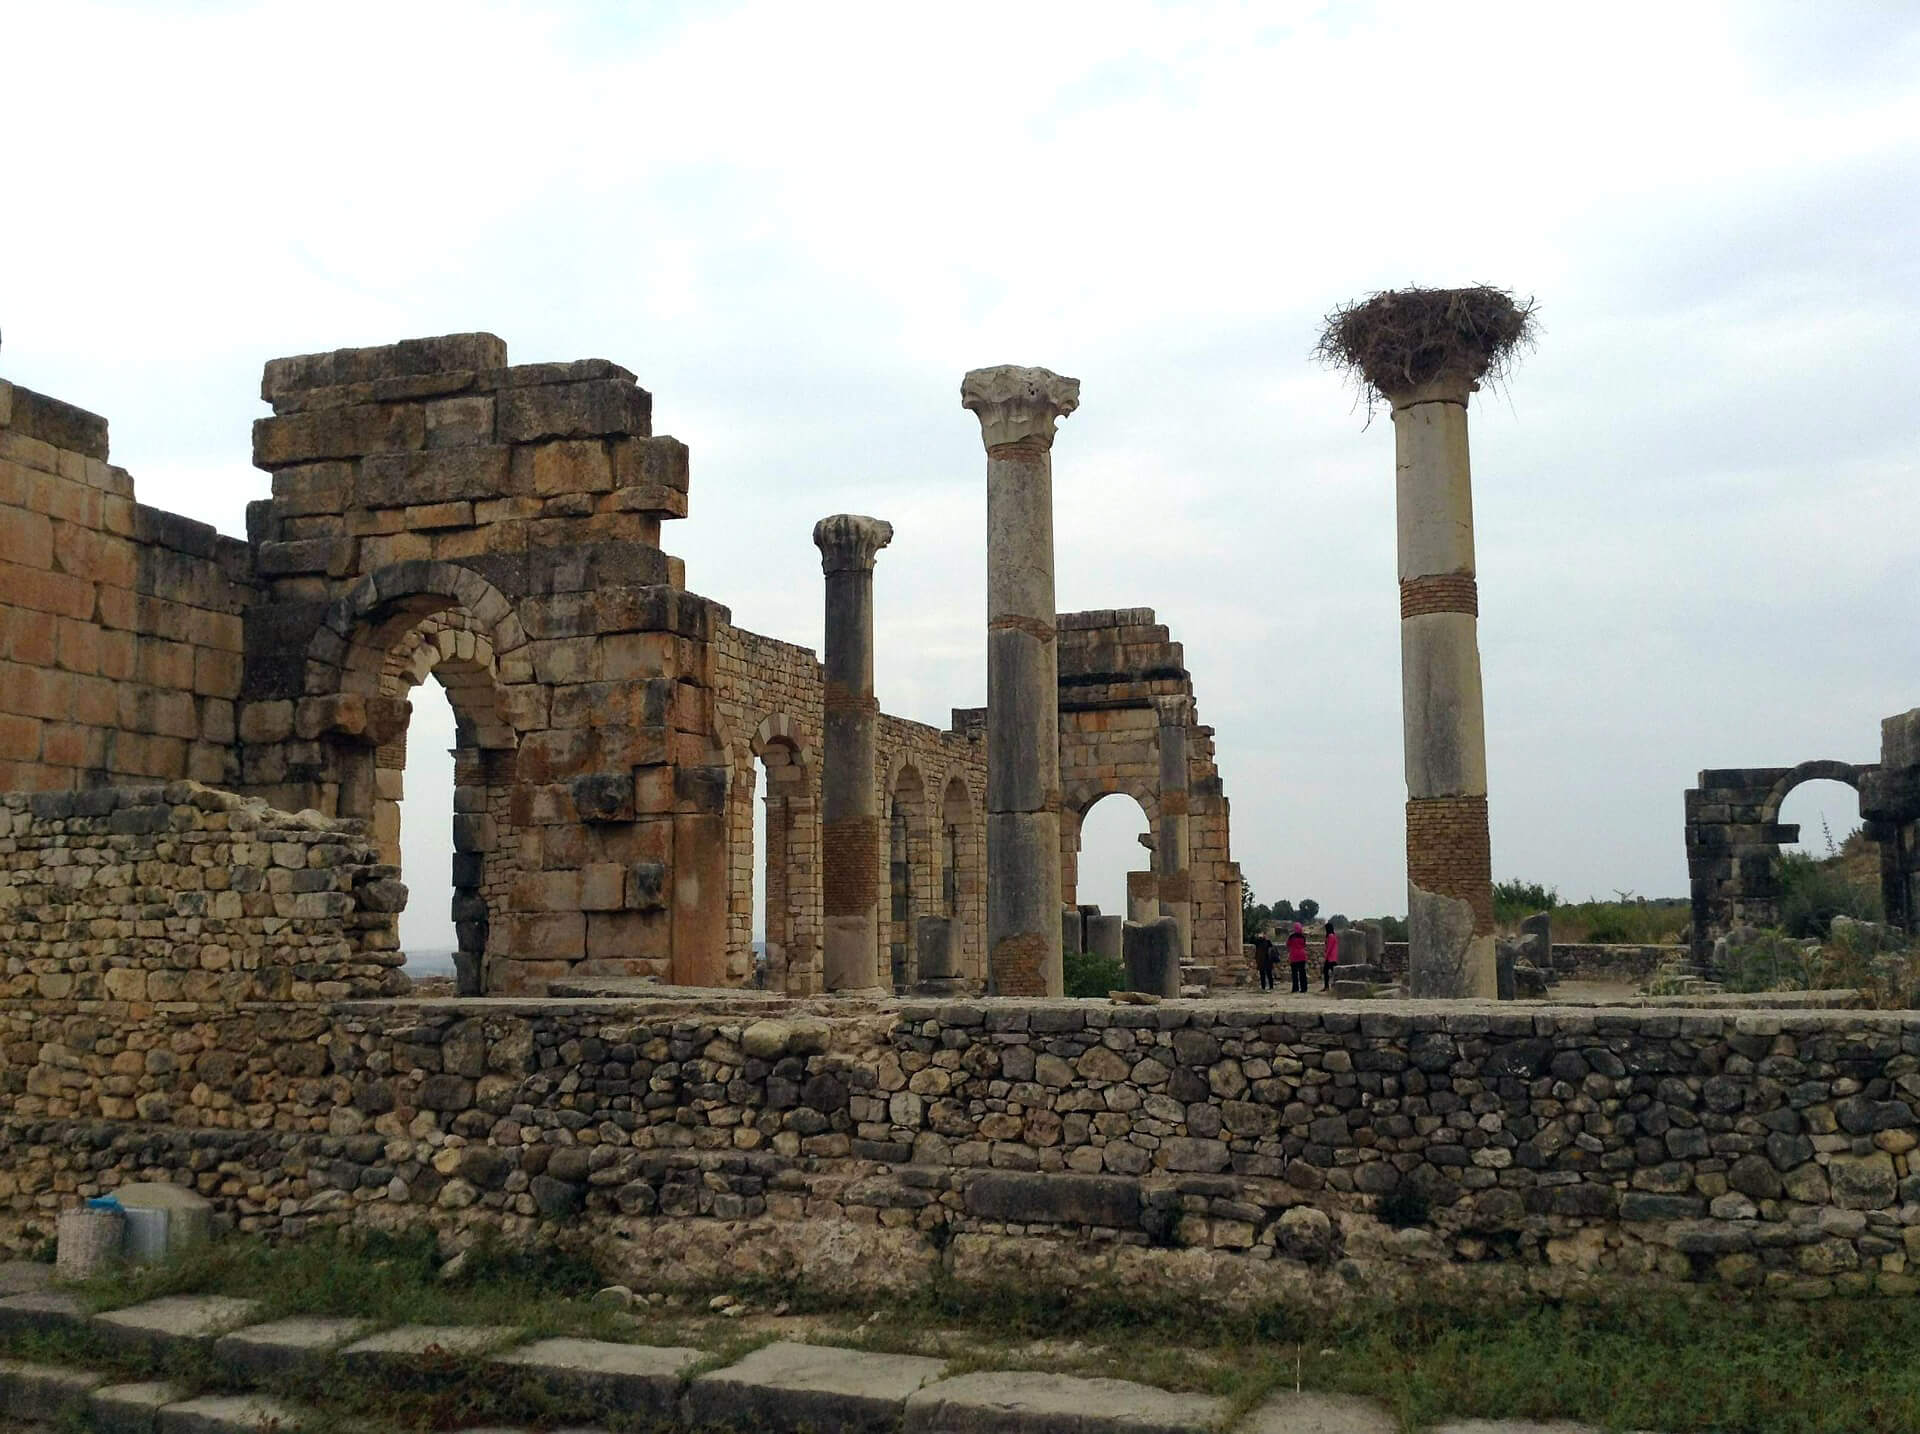 Sahara Desert Tour - What To Do and See in Fez - Ancient Roman Ruins of Volubilis